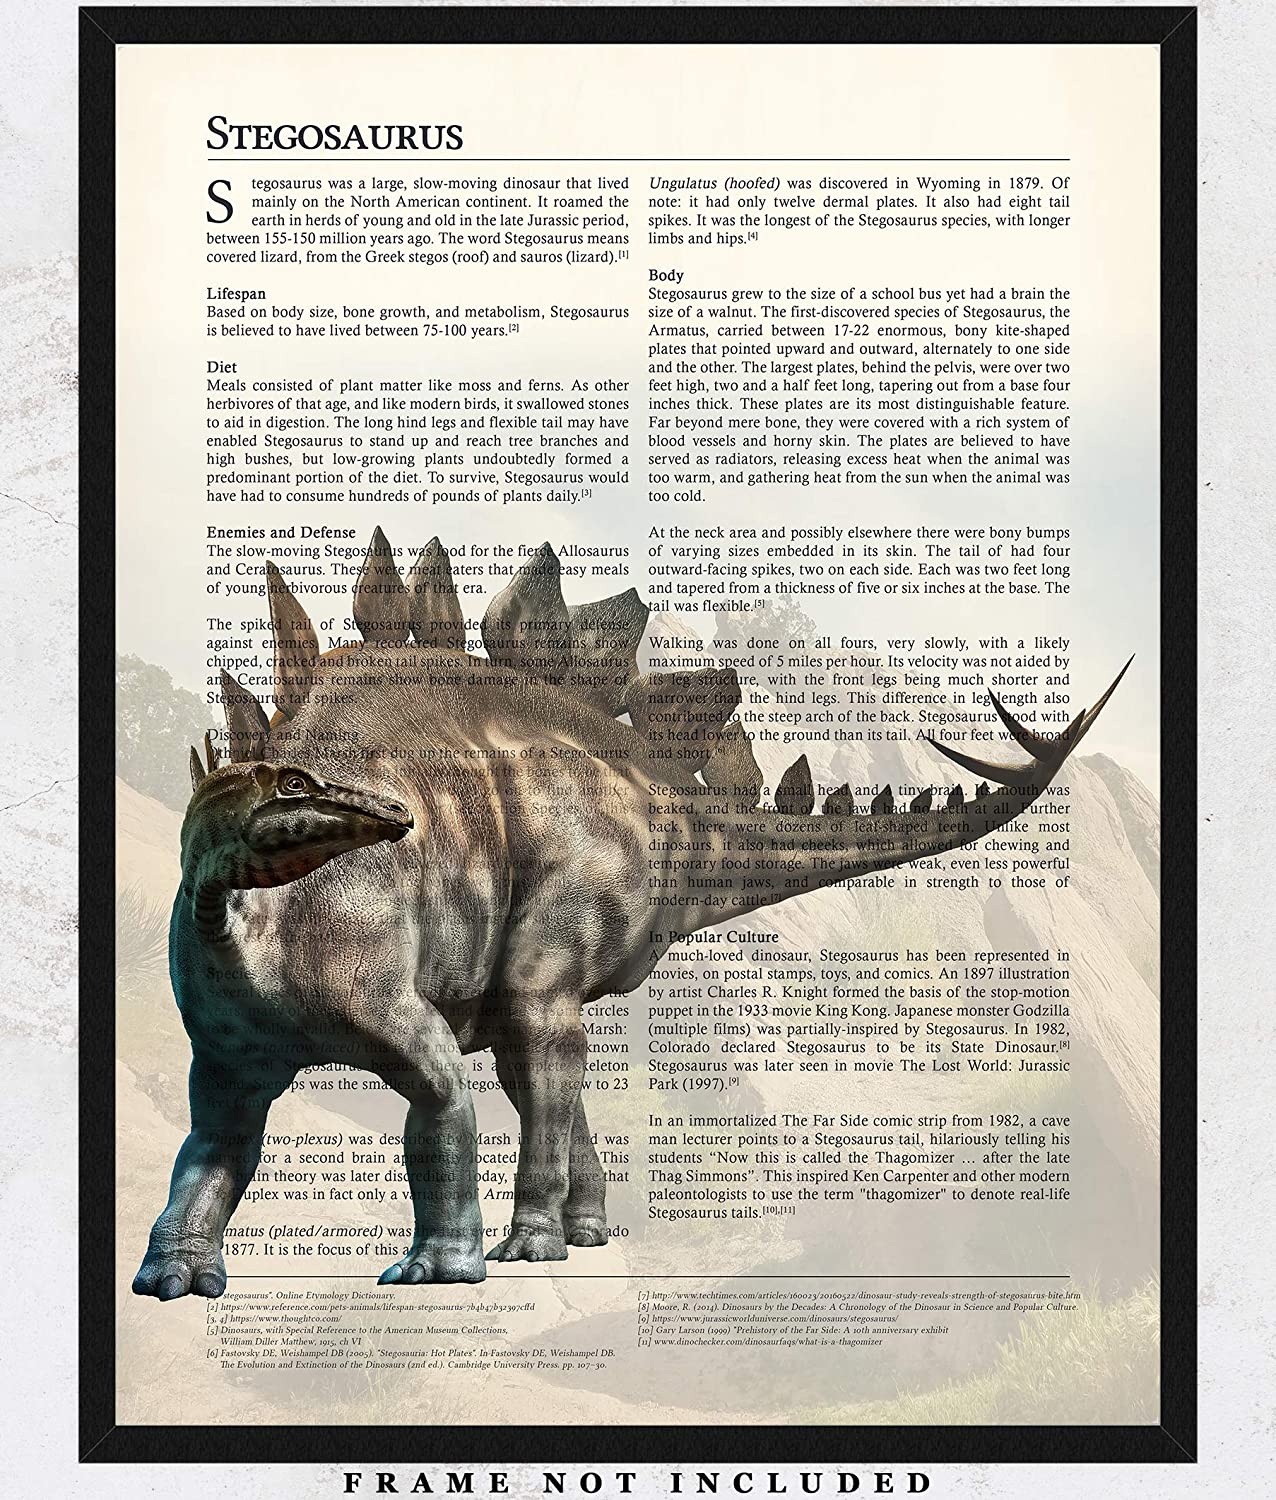 6e9a4042279 Amazon.com  Stegosaurus Dinosaur Wall Art Decor Prints  11x14 Unframed  Picture - Unique Room Decor for Boys Makes A Great Educational Gift for all  ages!